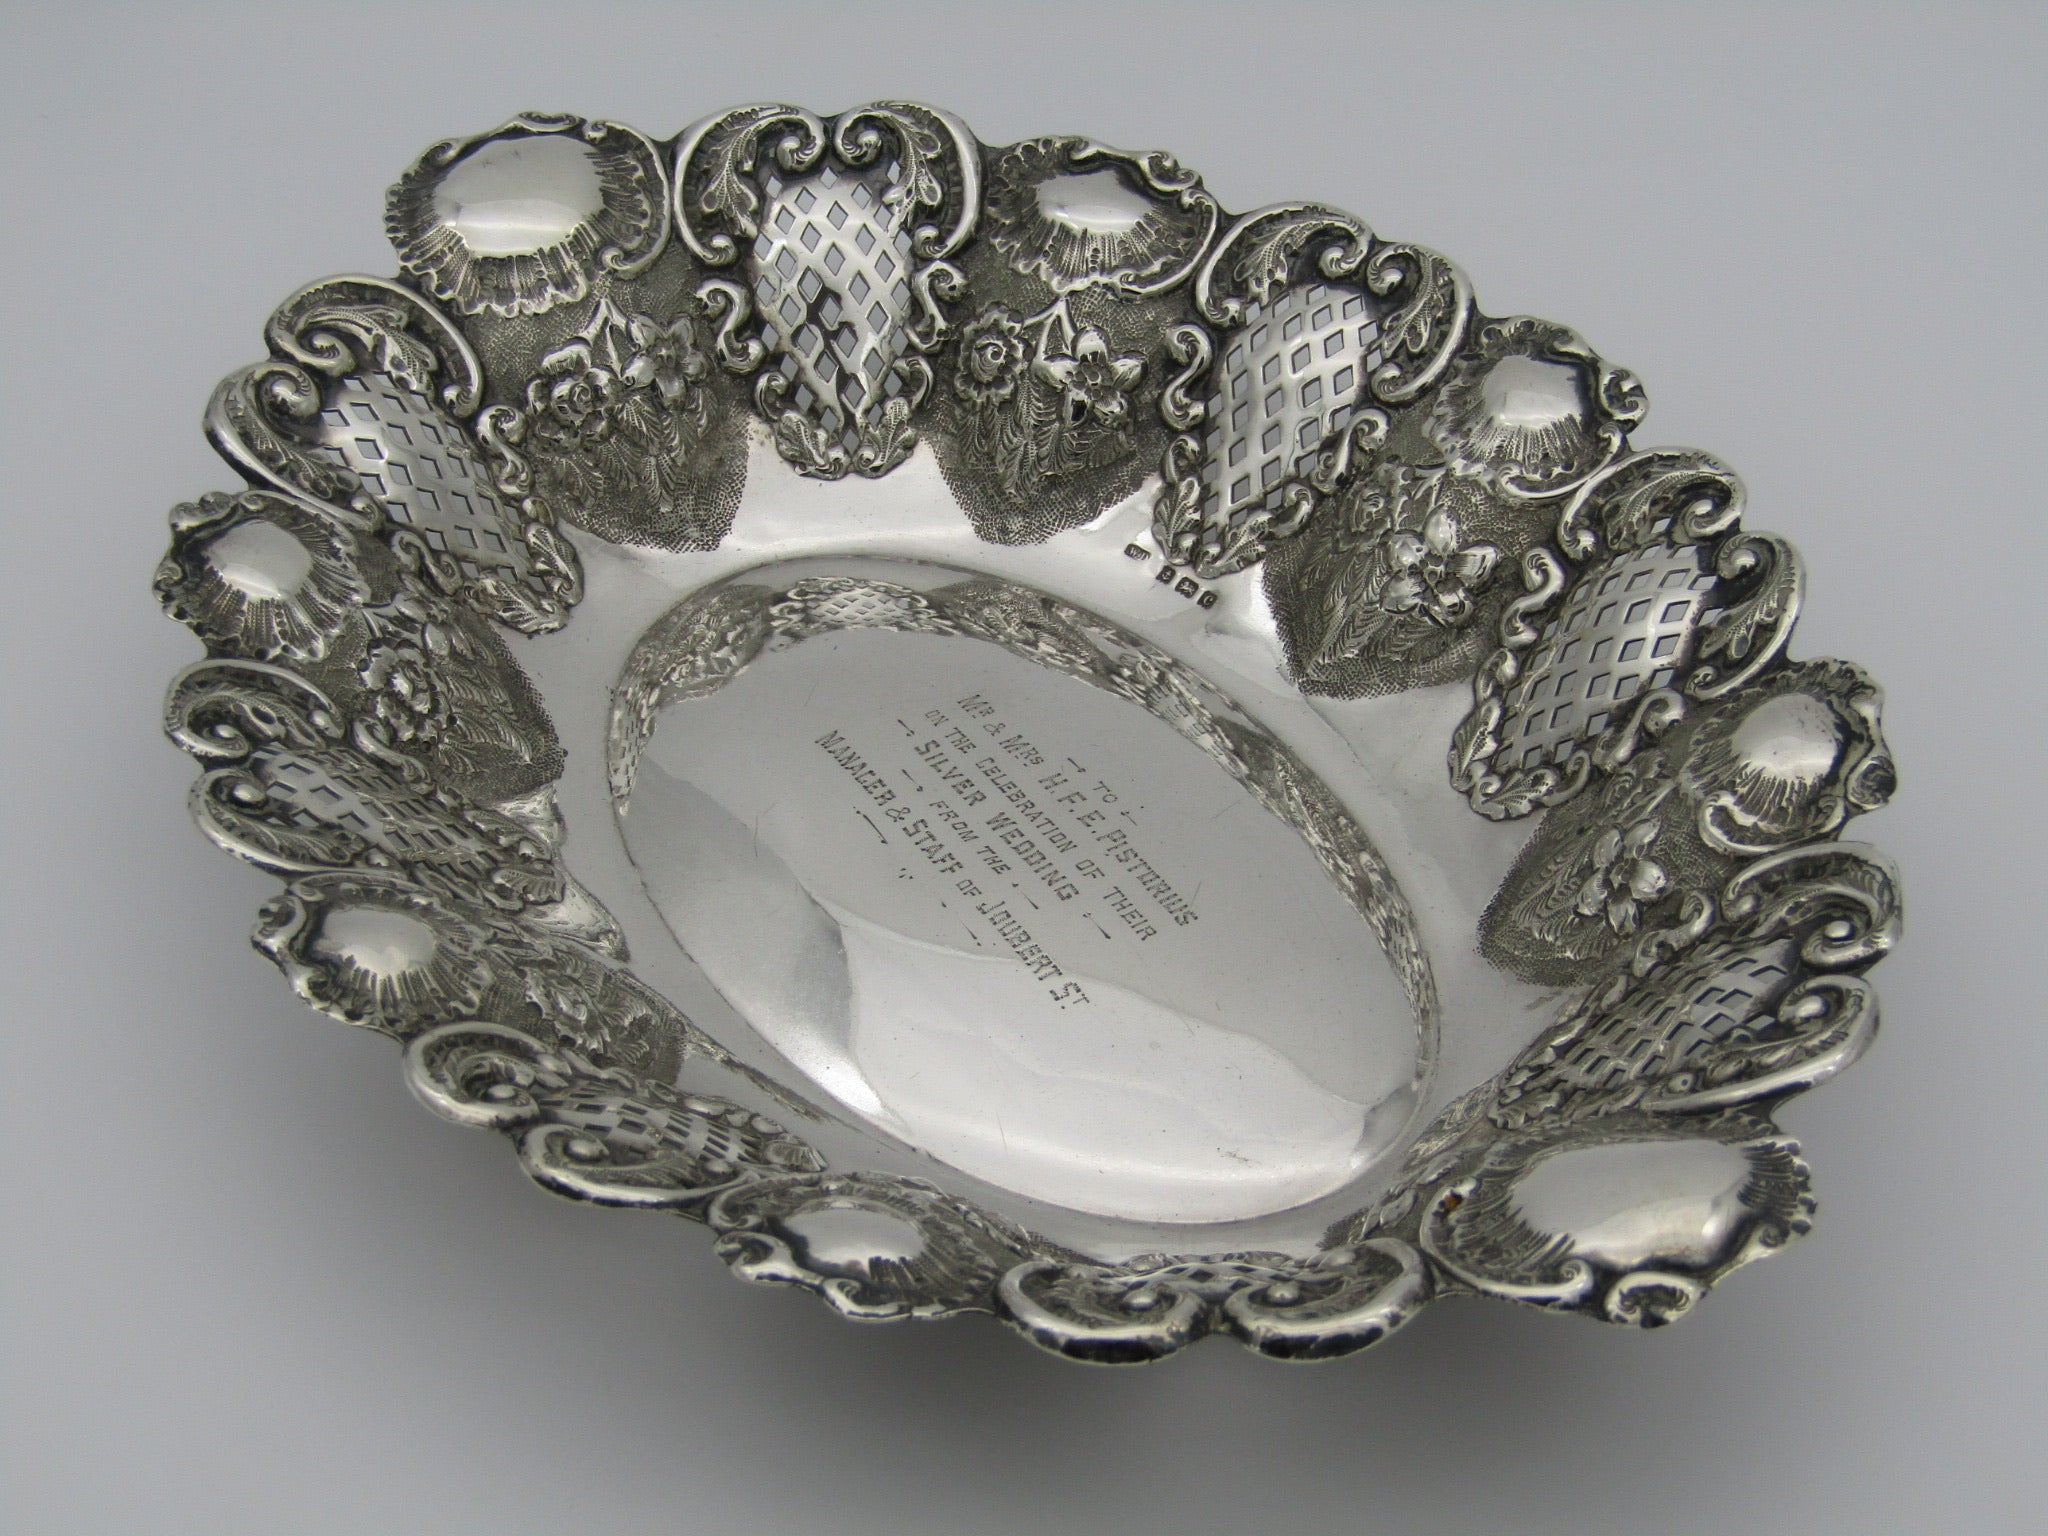 A sterling silver pierced bowl by William Davenport. Birmingham, 1902.